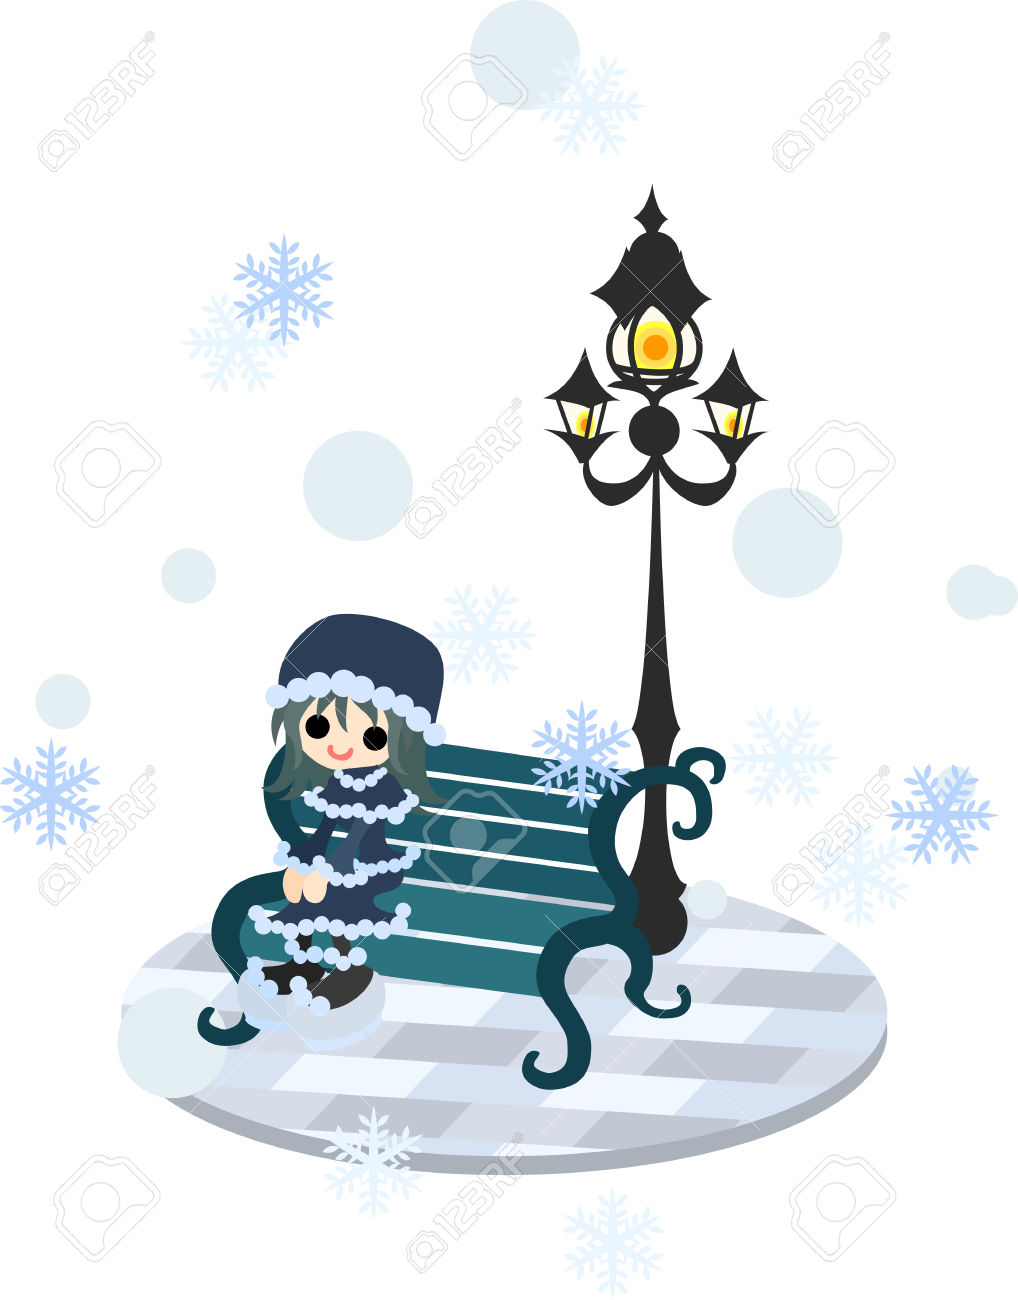 A Girl Is Sitting On The Bench And Looking At Snow In The Town.